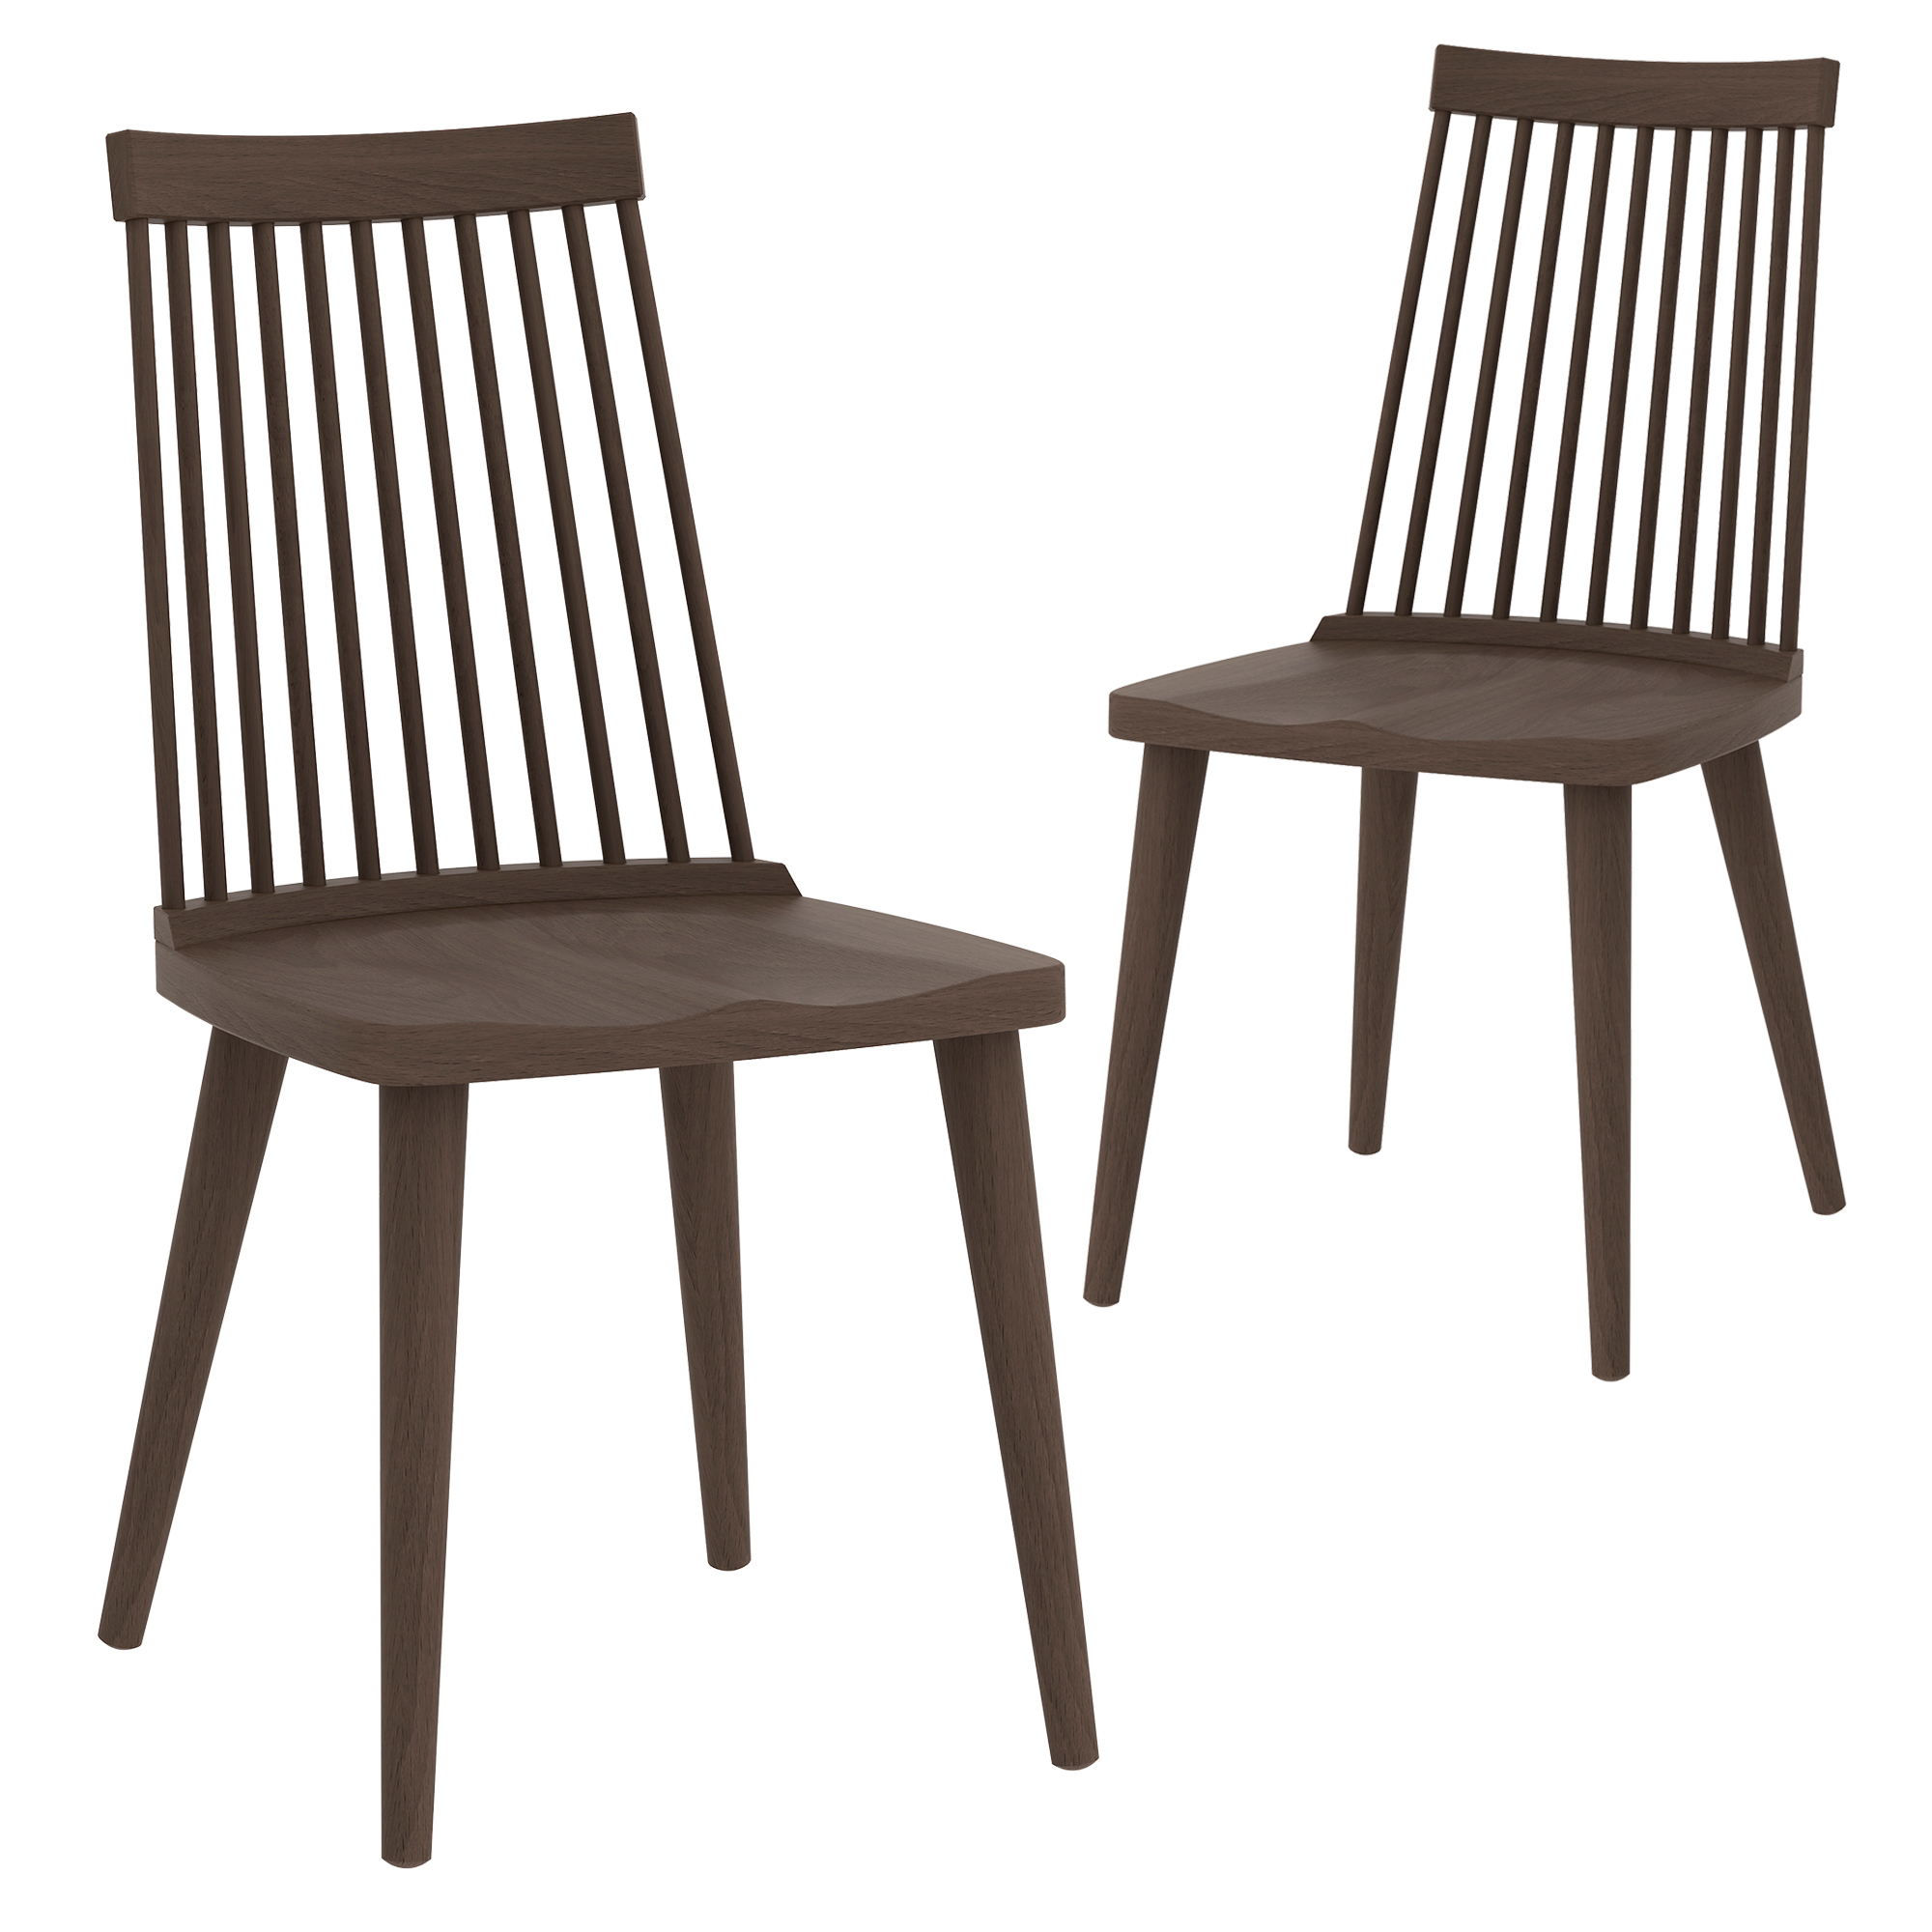 Sku tpwt2596 walnut spindle retro dining chairs is also sometimes listed under the following manufacturer numbers iwsrdwlw